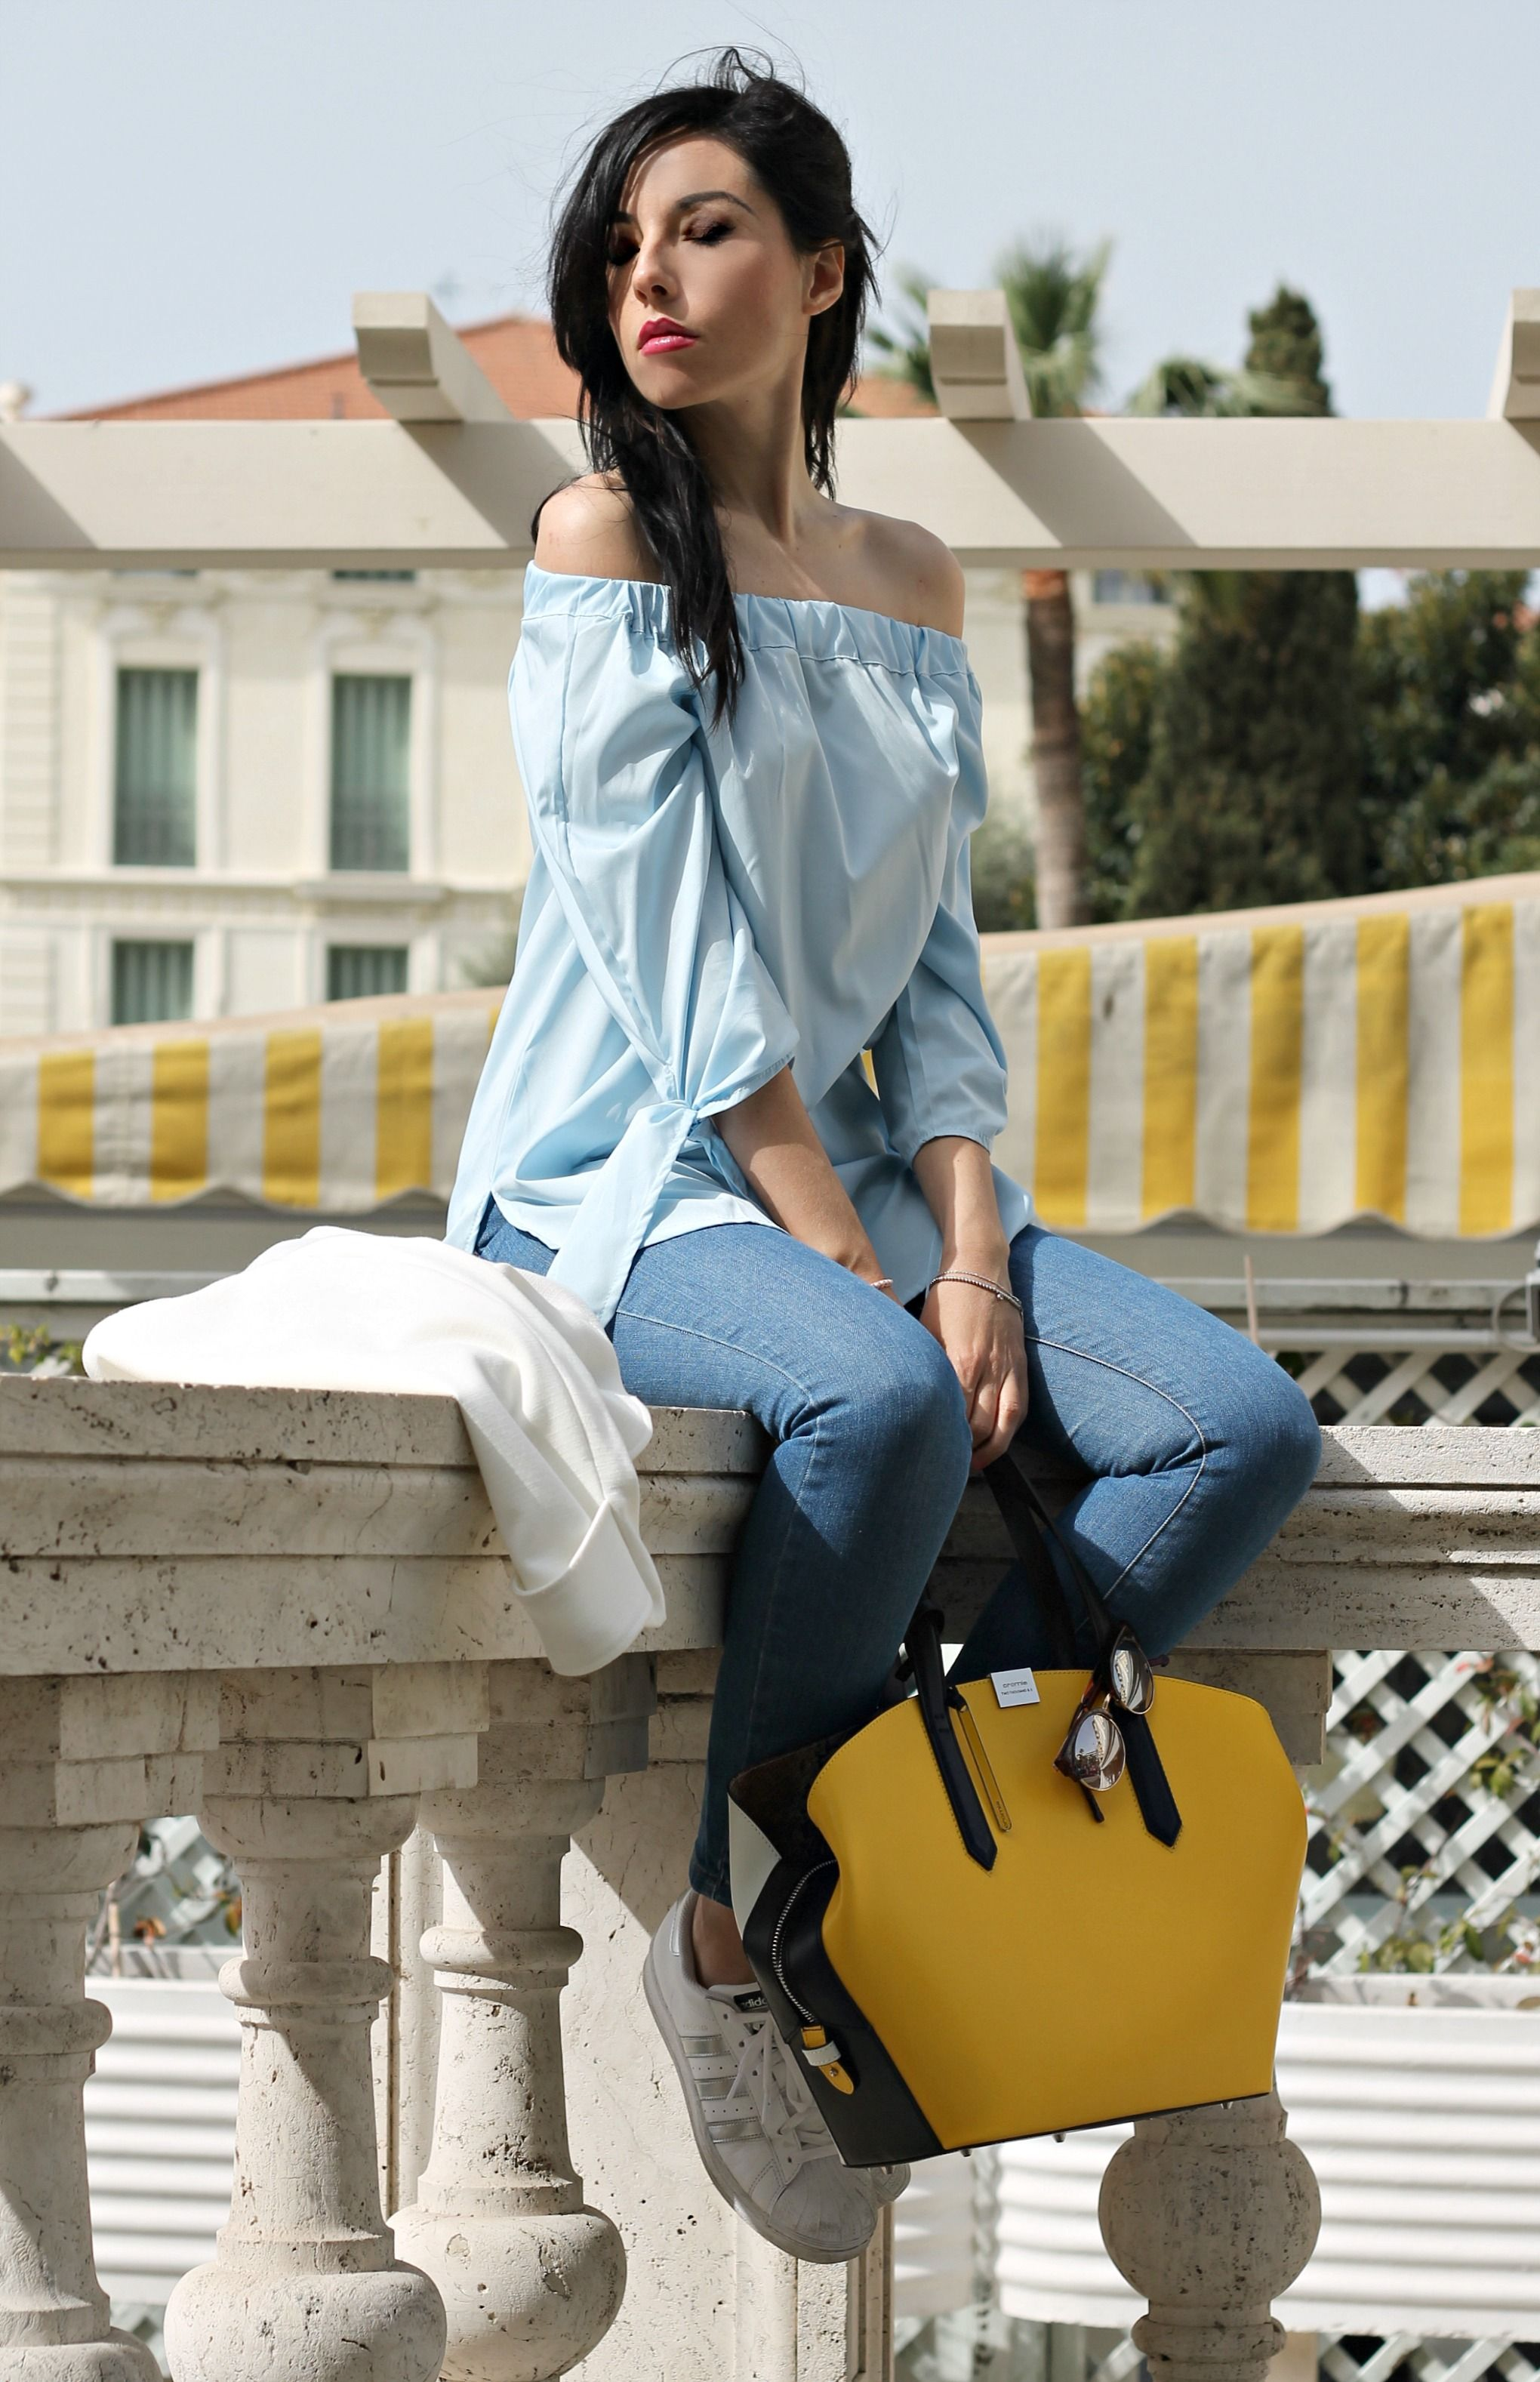 Borse Casual : Casual chic outfit style ger elisa